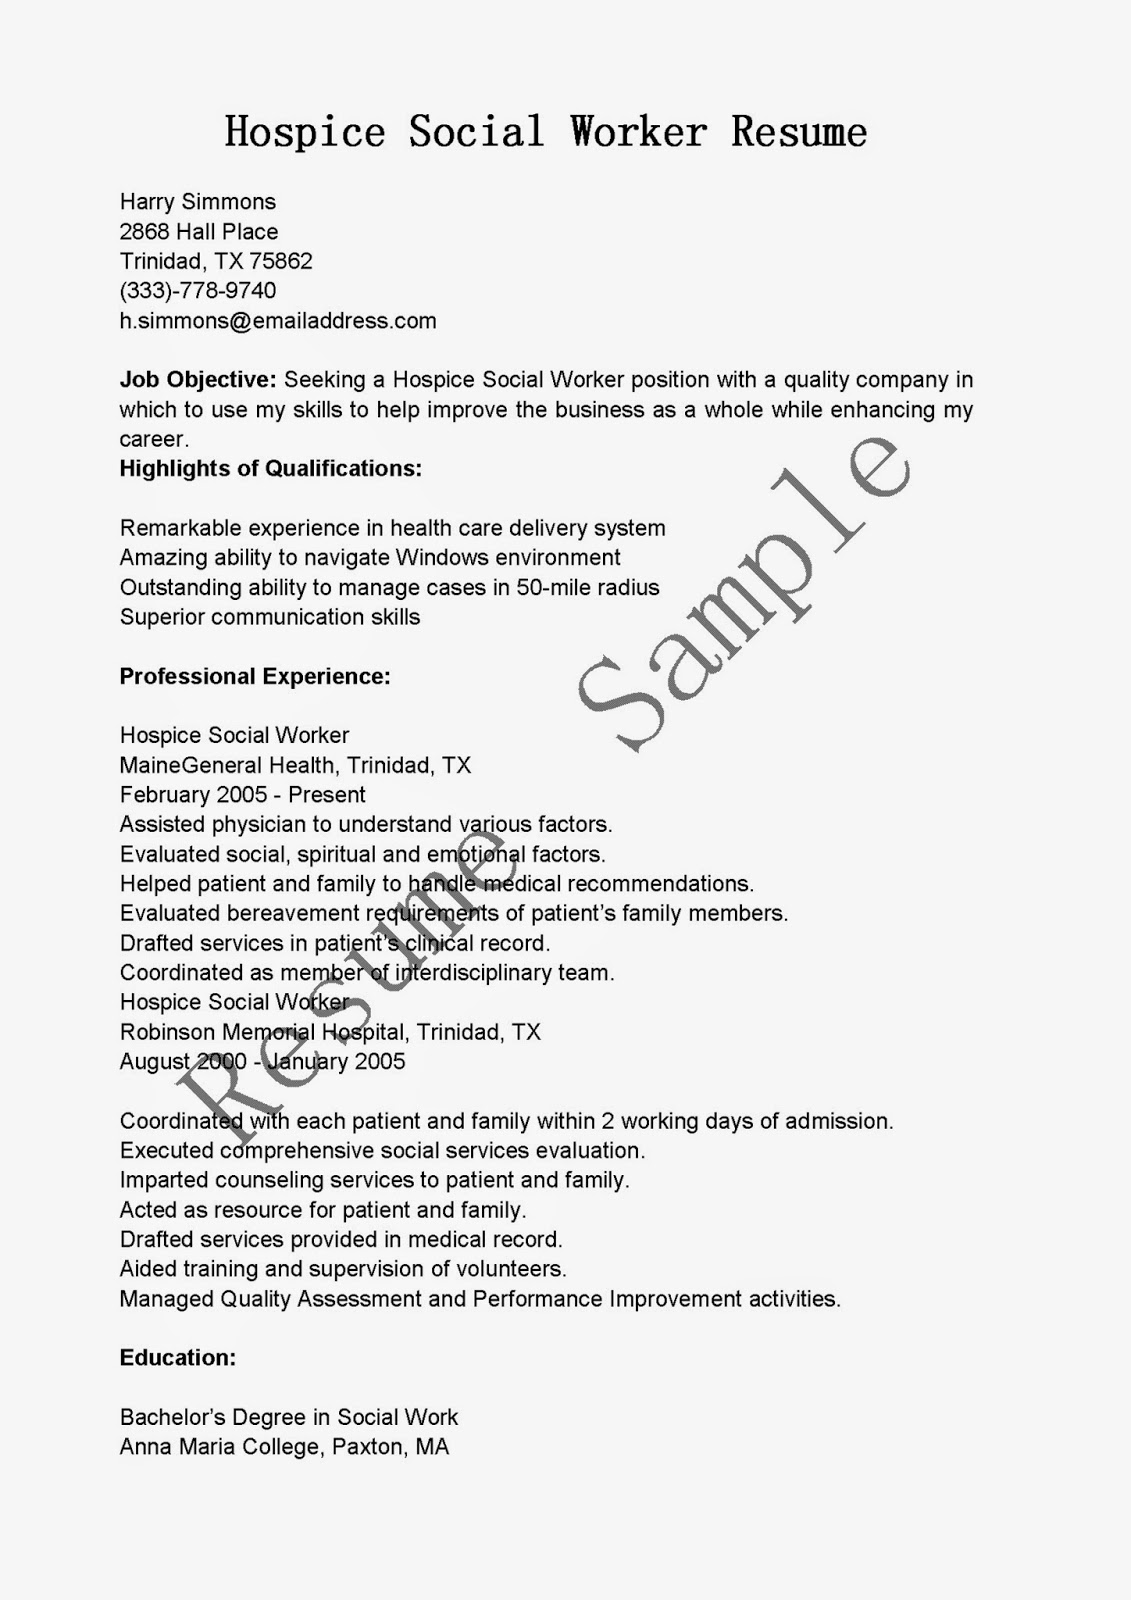 Medical Interpreter Resume Sample Cost To Buy College Essays Educationusa Best Place To